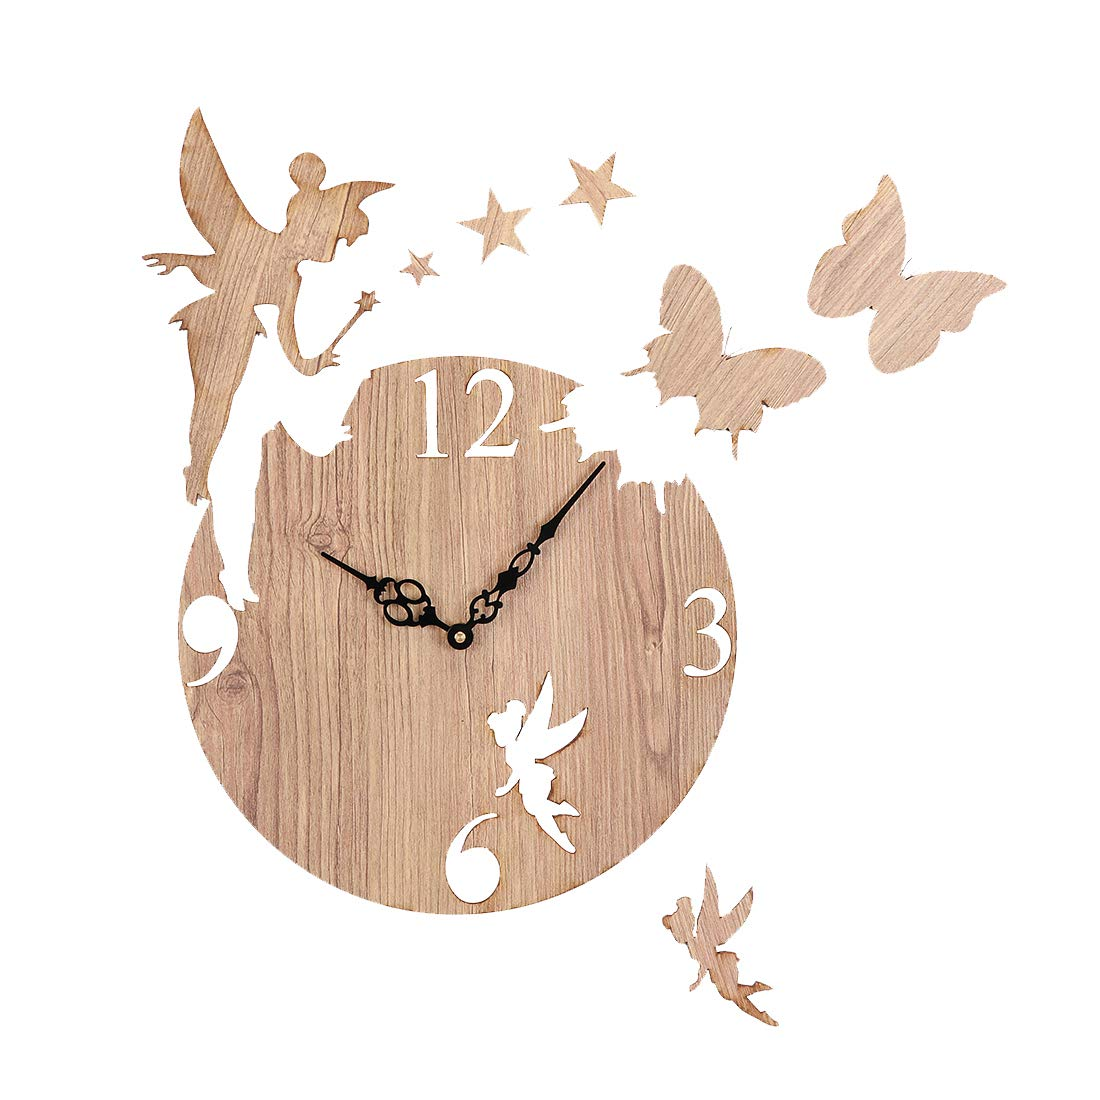 9.)Sehaz Artworks, Fairy Butterfly Decorative Wall Clock Non Ticking Silent - 10 Inch Quartz